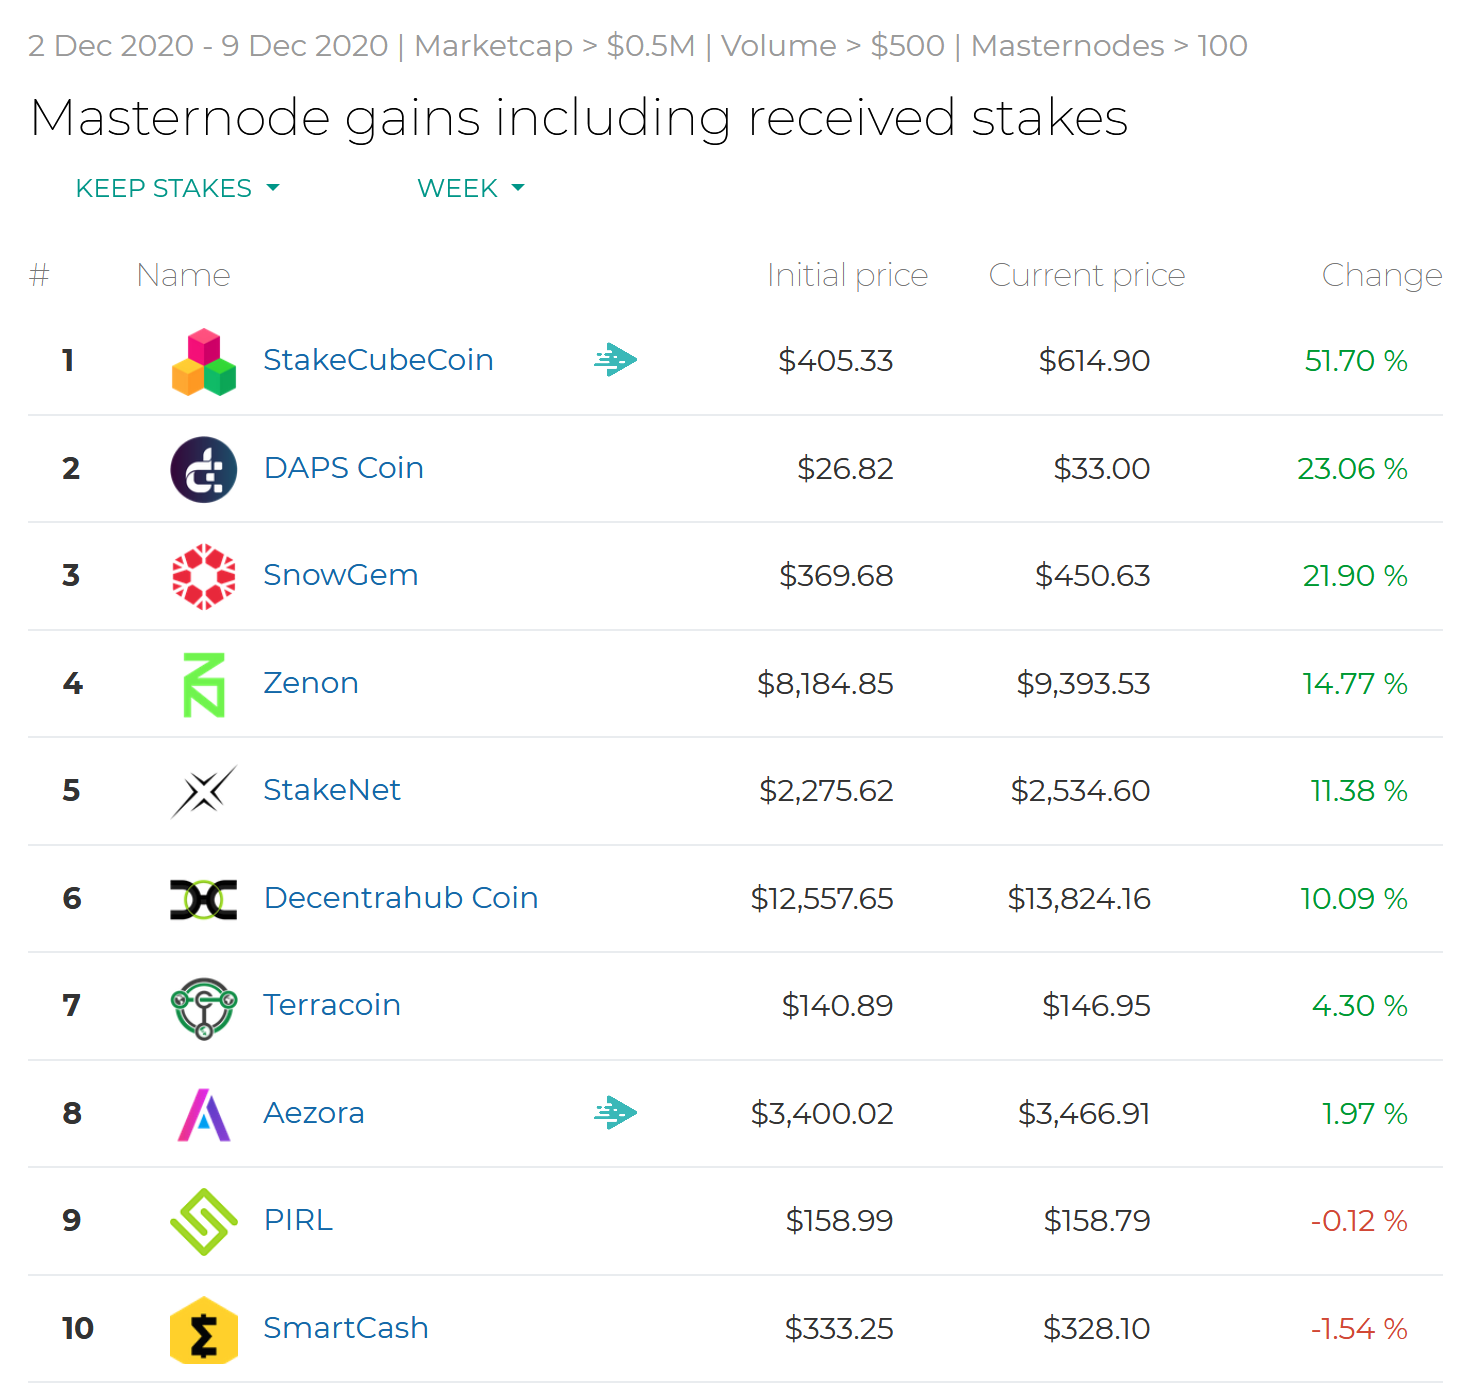 Screenshot_2020-12-09-Masternode-gains-including-received-stakes